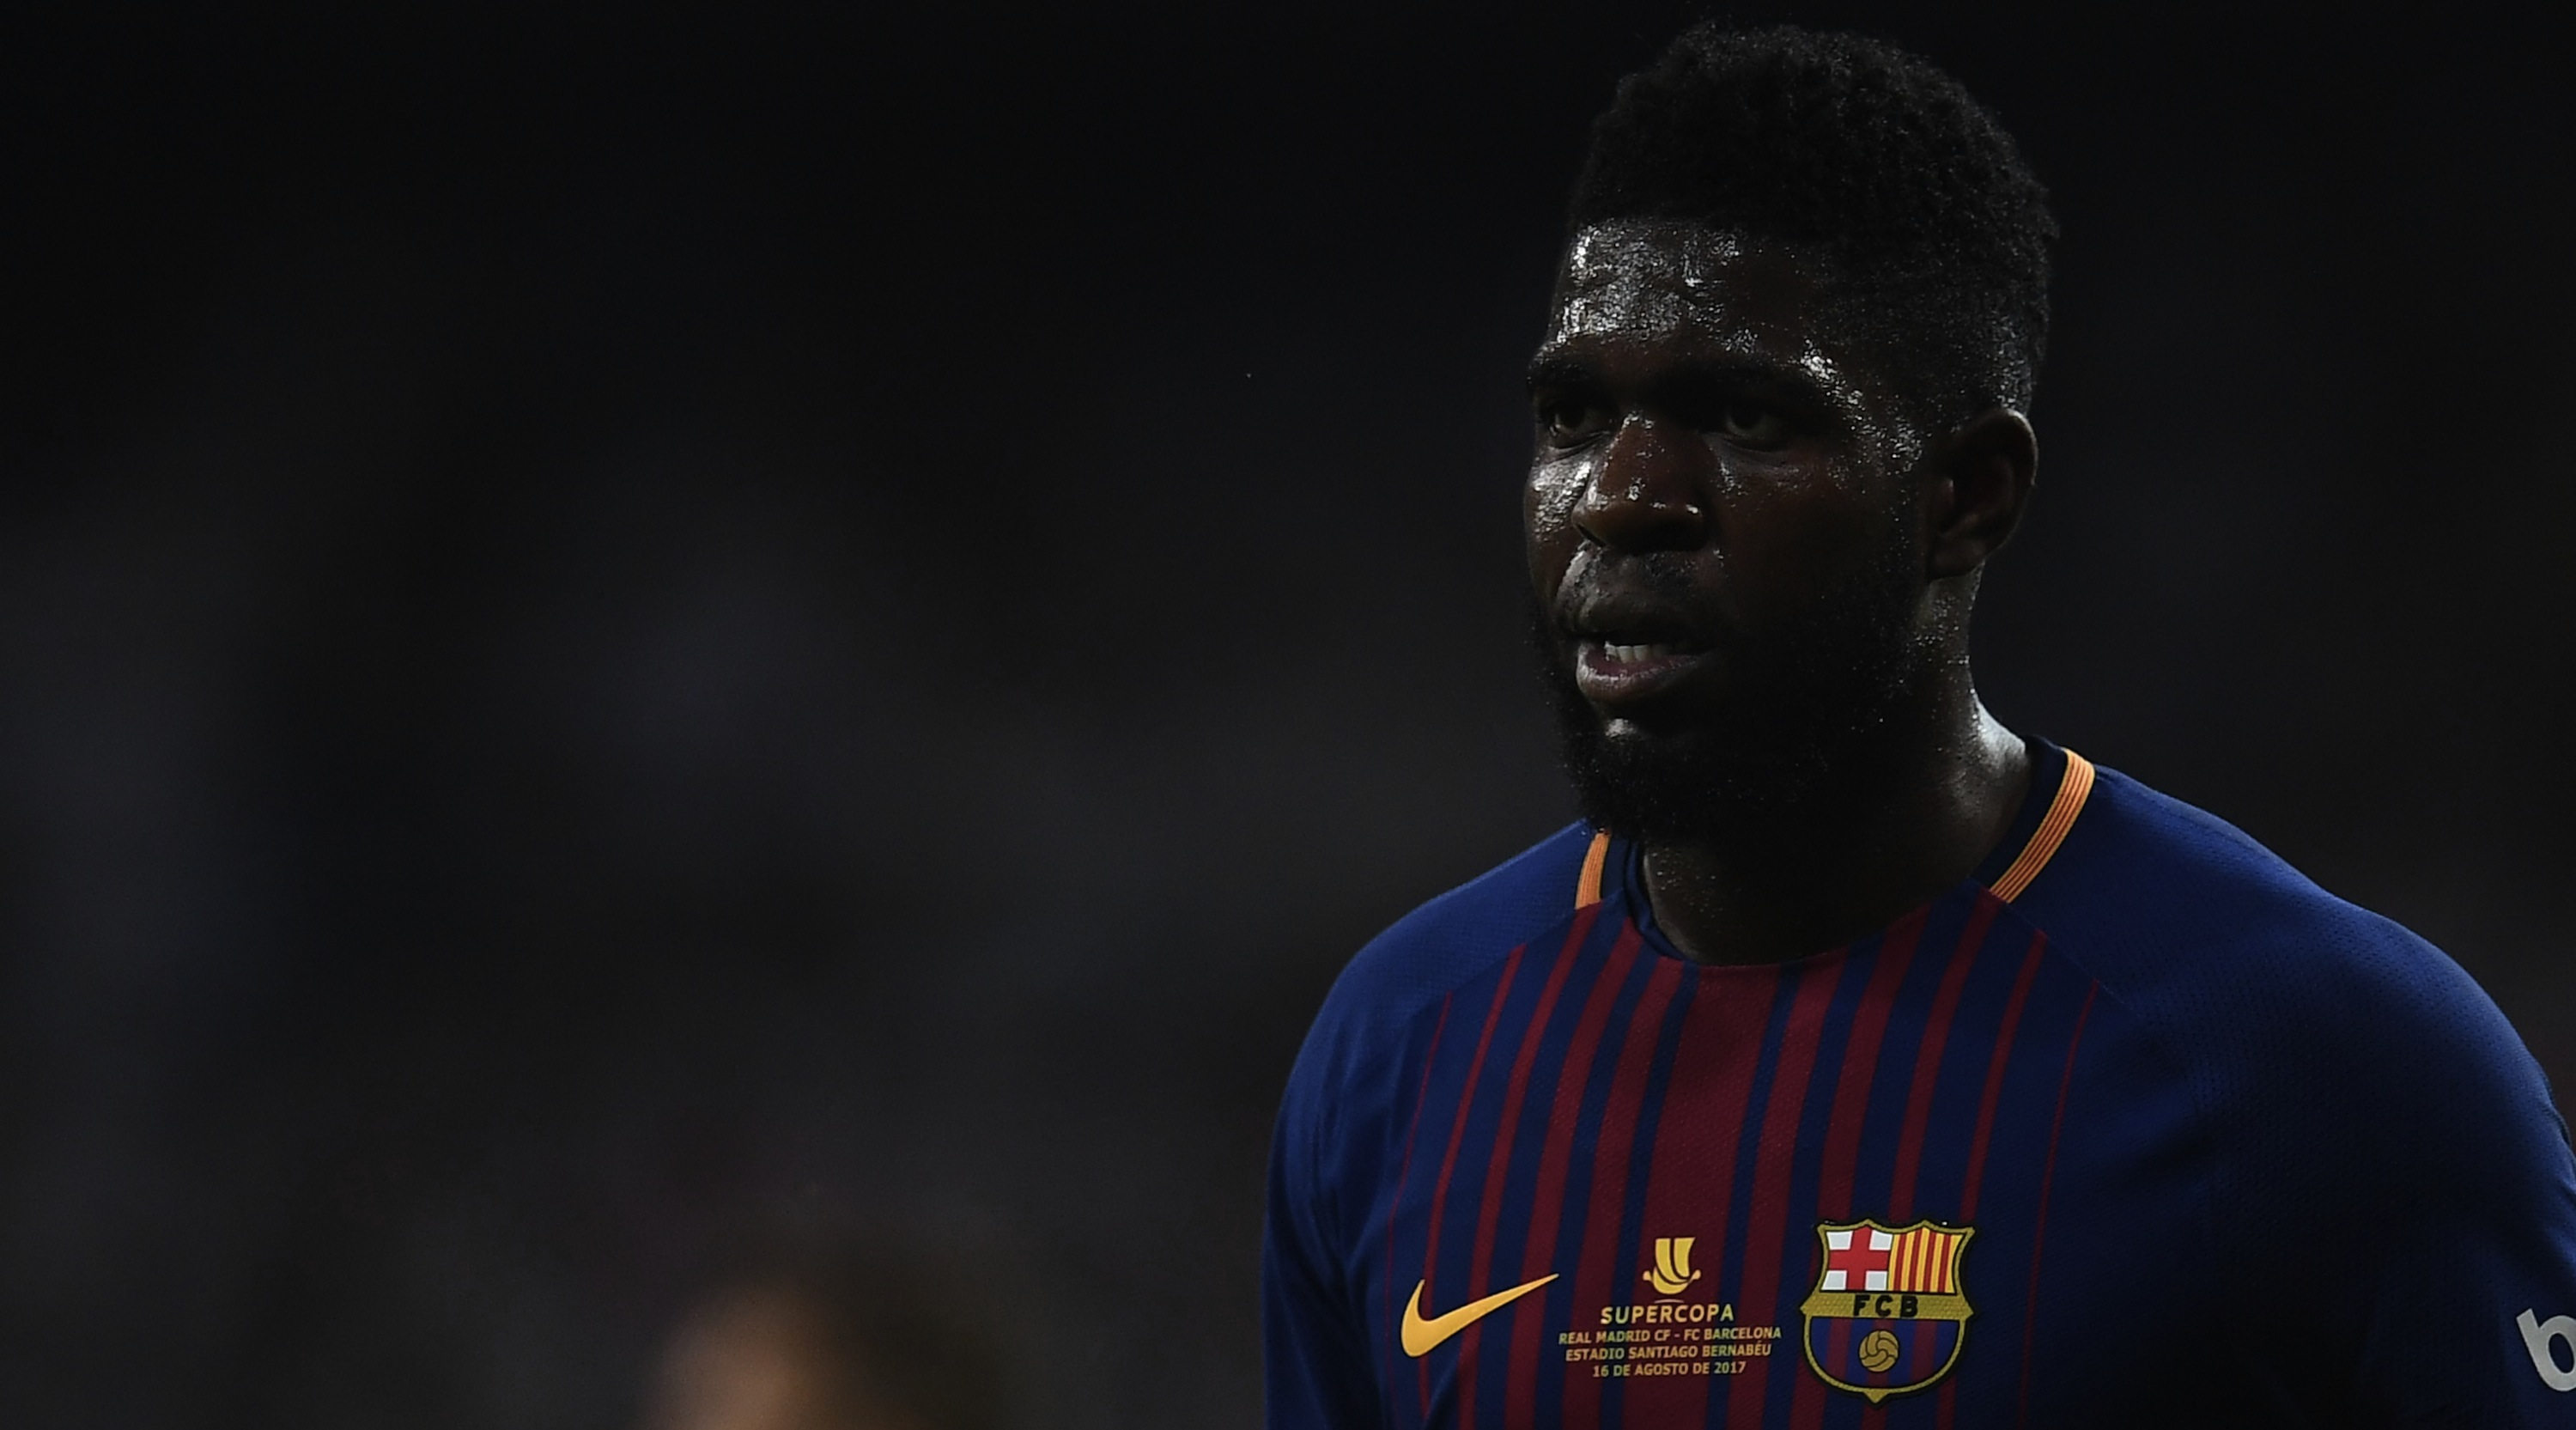 Barcelona's French defender Samuel Umtiti looks on during the second leg of the Spanish Supercup football match Real Madrid vs FC Barcelona at the Santiago Bernabeu stadium in Madrid, on August 16, 2017. / AFP PHOTO / GABRIEL BOUYS (Photo credit should read GABRIEL BOUYS/AFP/Getty Images)